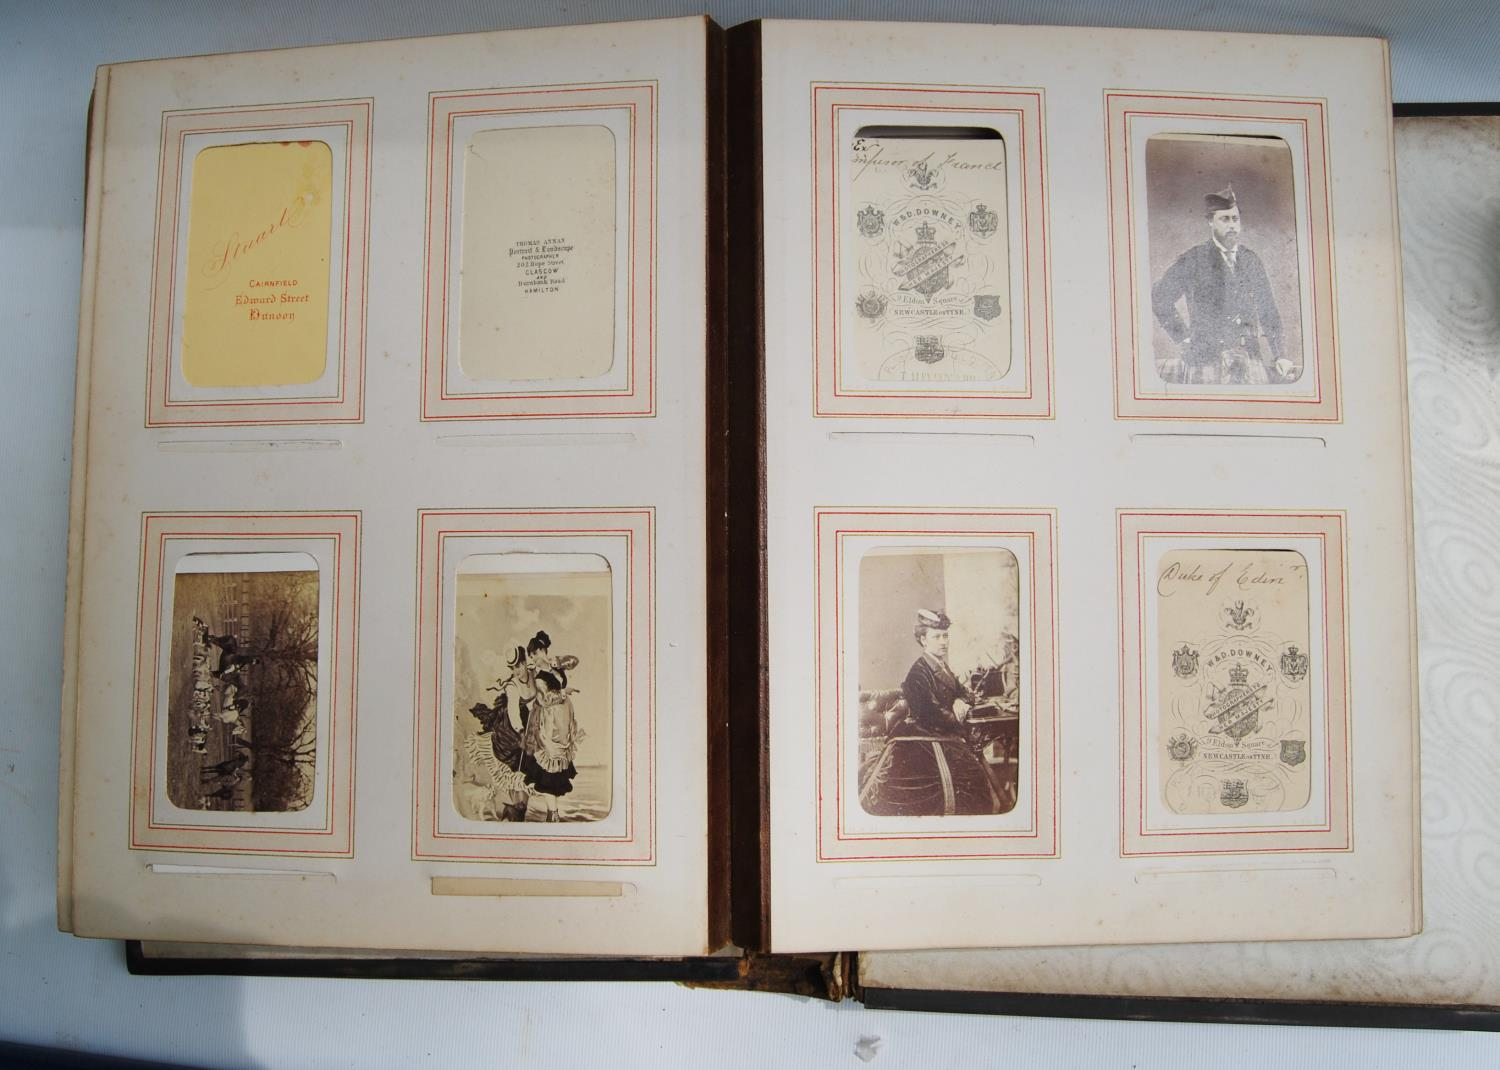 Victorian photograph album belong to Harden Burnley, signed 1870, comprising of royalty, officers - Image 10 of 10